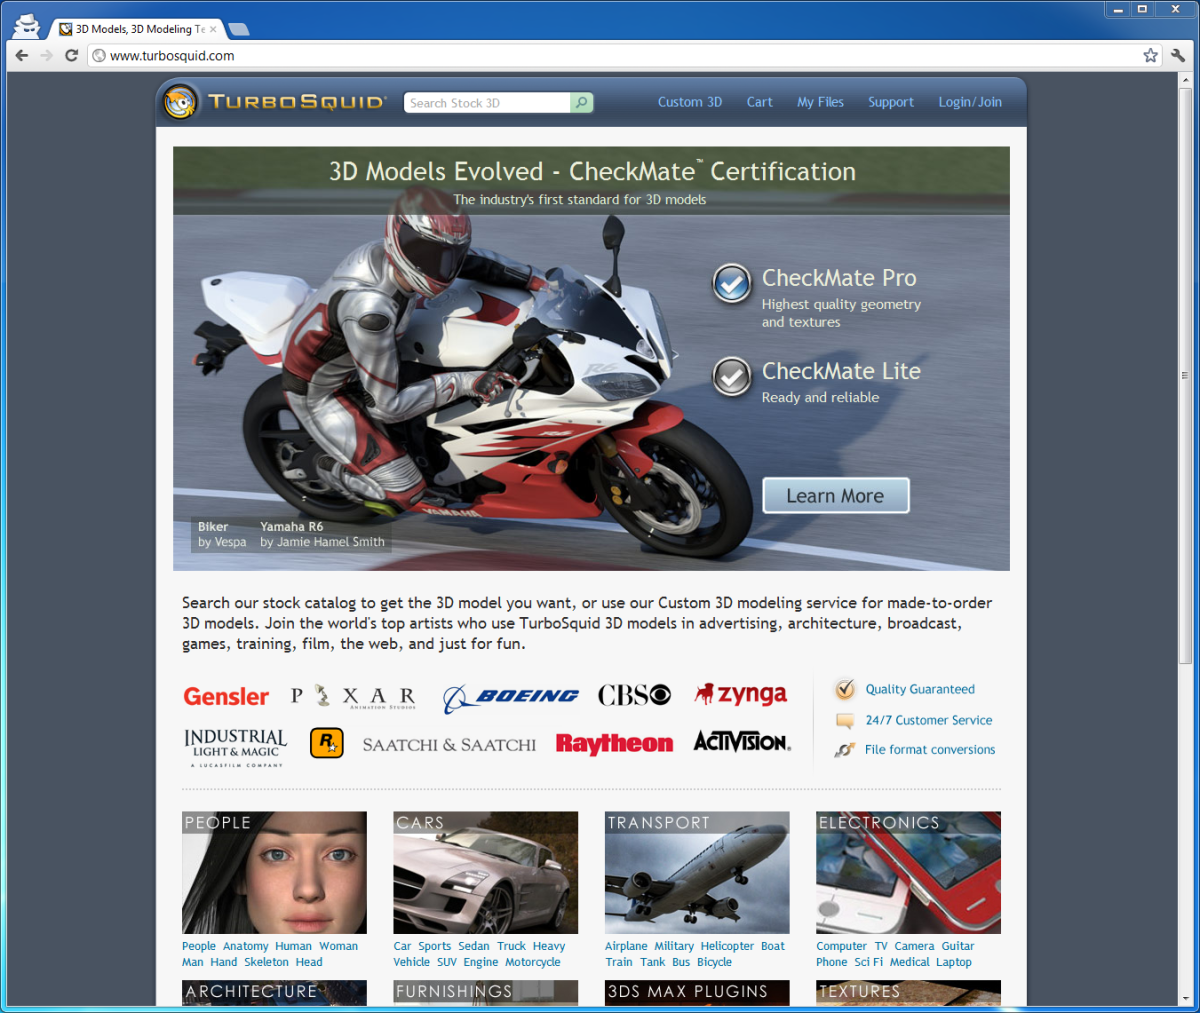 R6 on TurboSquid Home Page